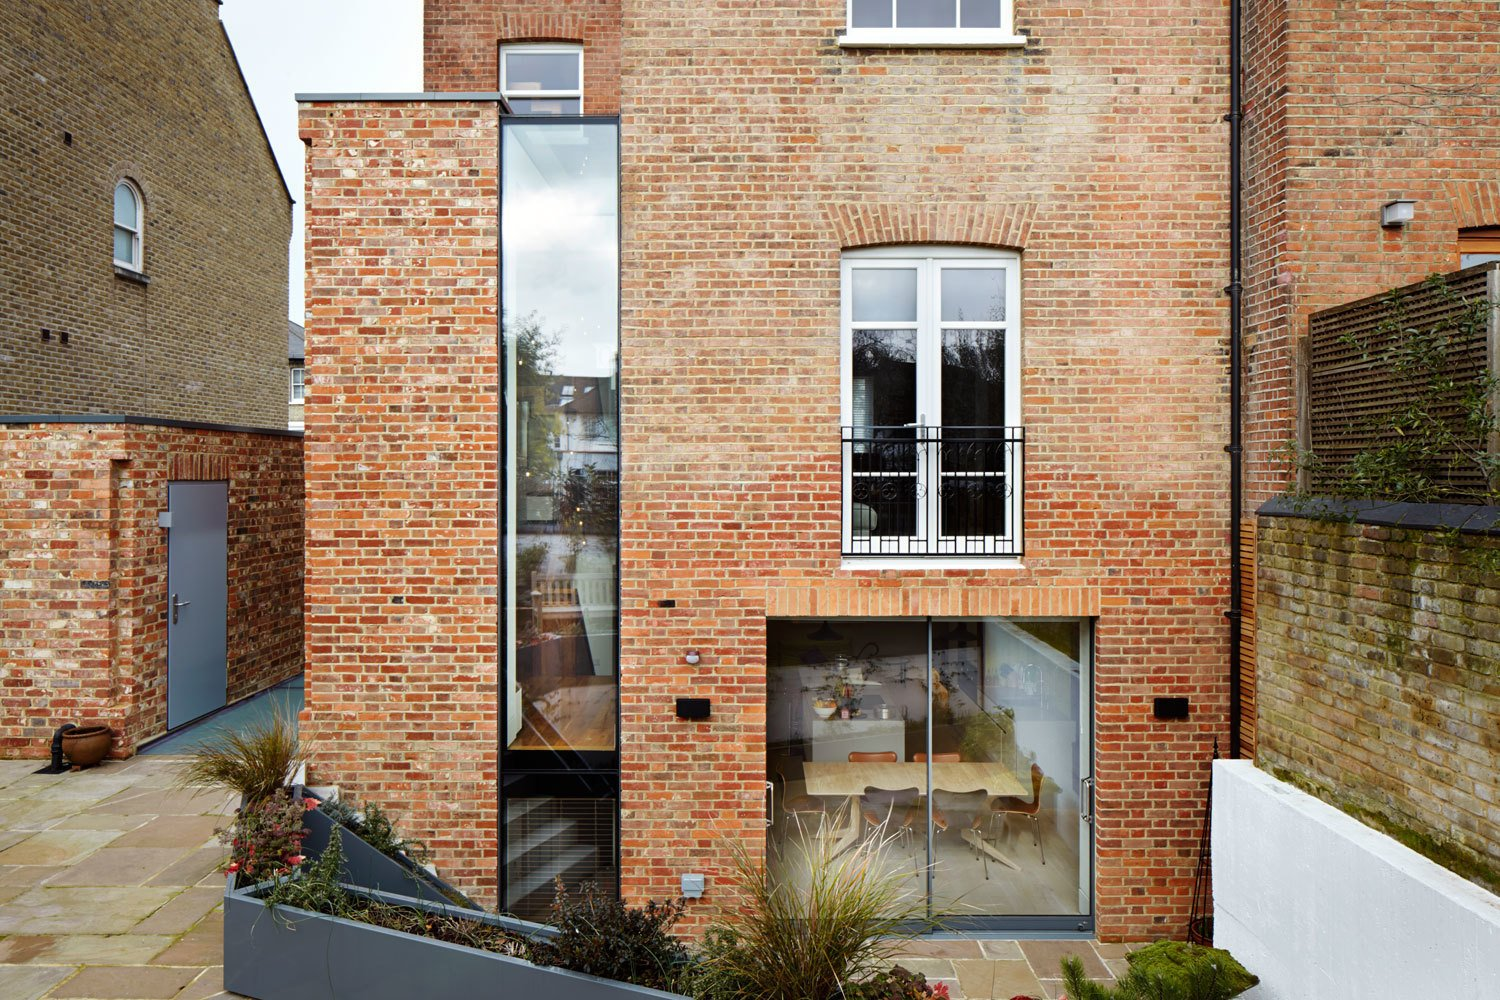 A tall and narrow window separates the new brickwork from the historic building, making its lines and profile clearly understandable.